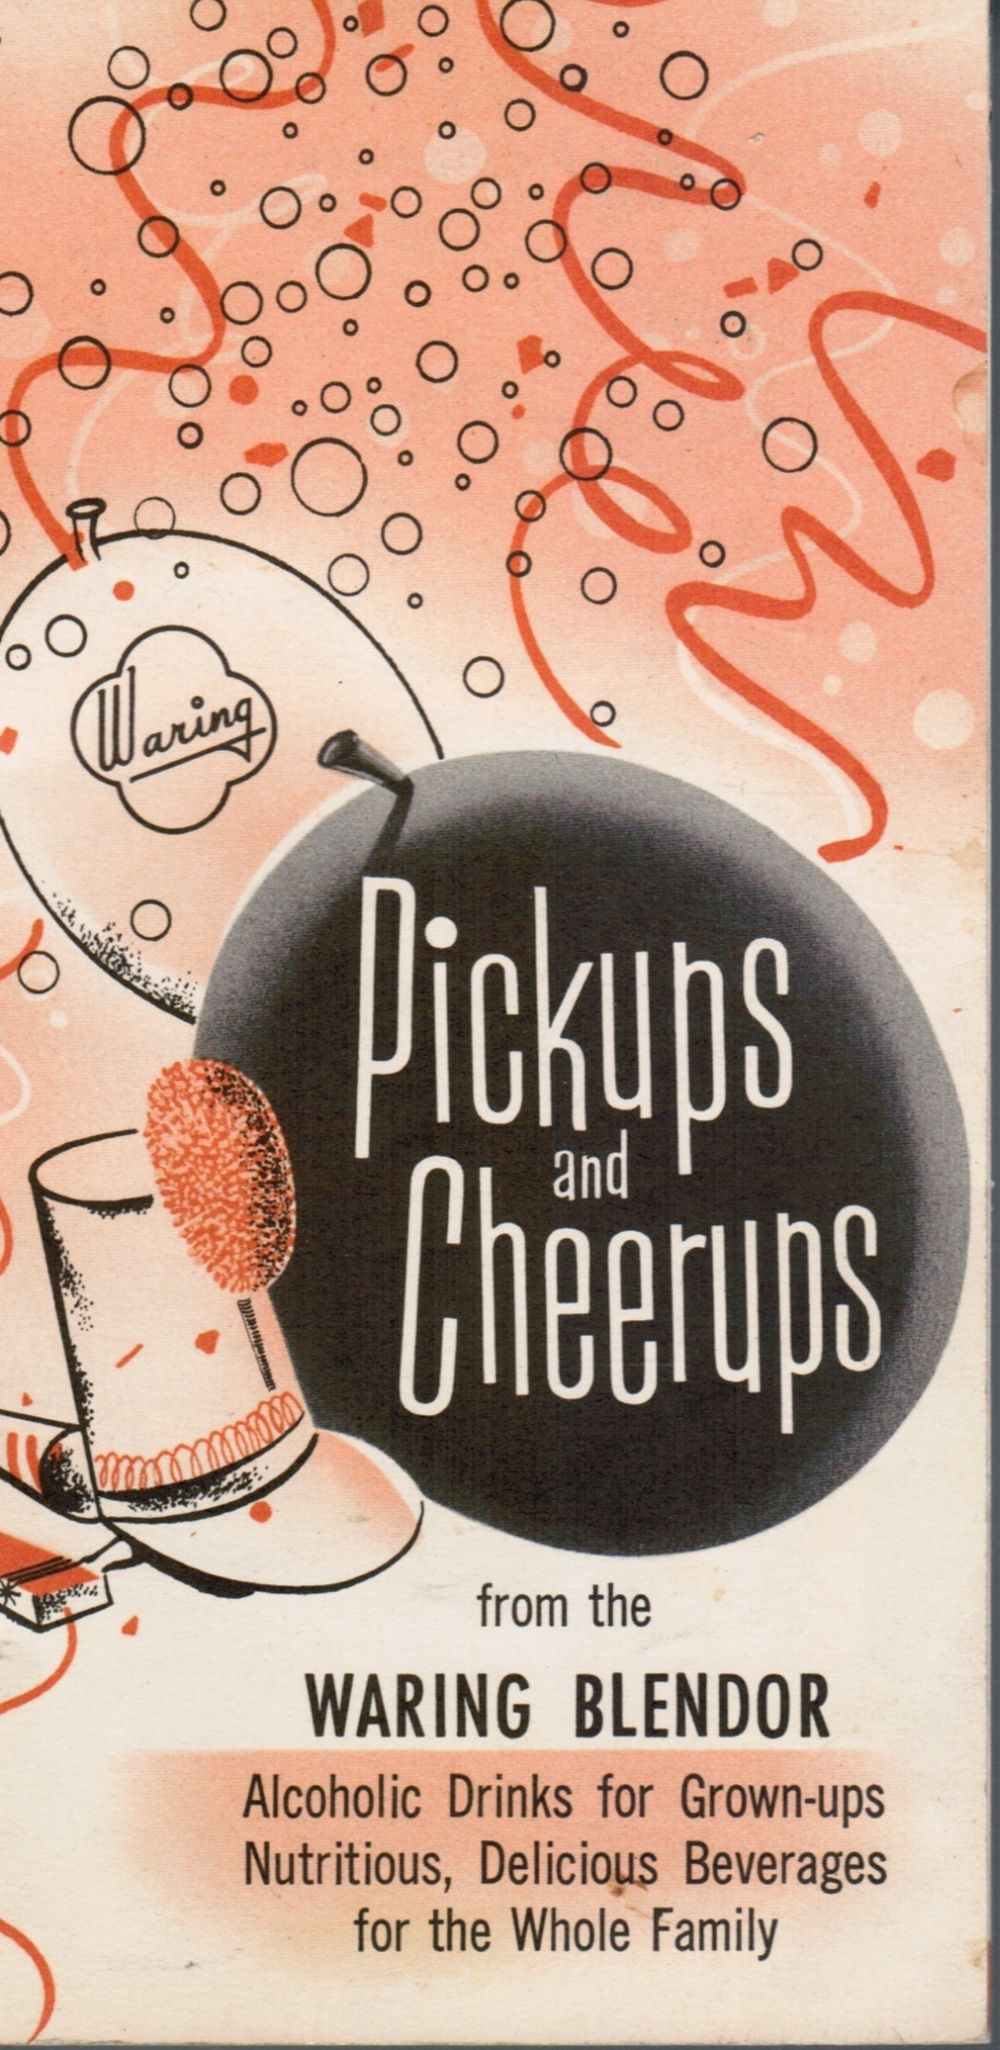 Pickups and Cheerups from the Waring Blender; Alcoholic Drinks for Grown-Ups. Nutritious, Delicious Beverages for the Whole Family